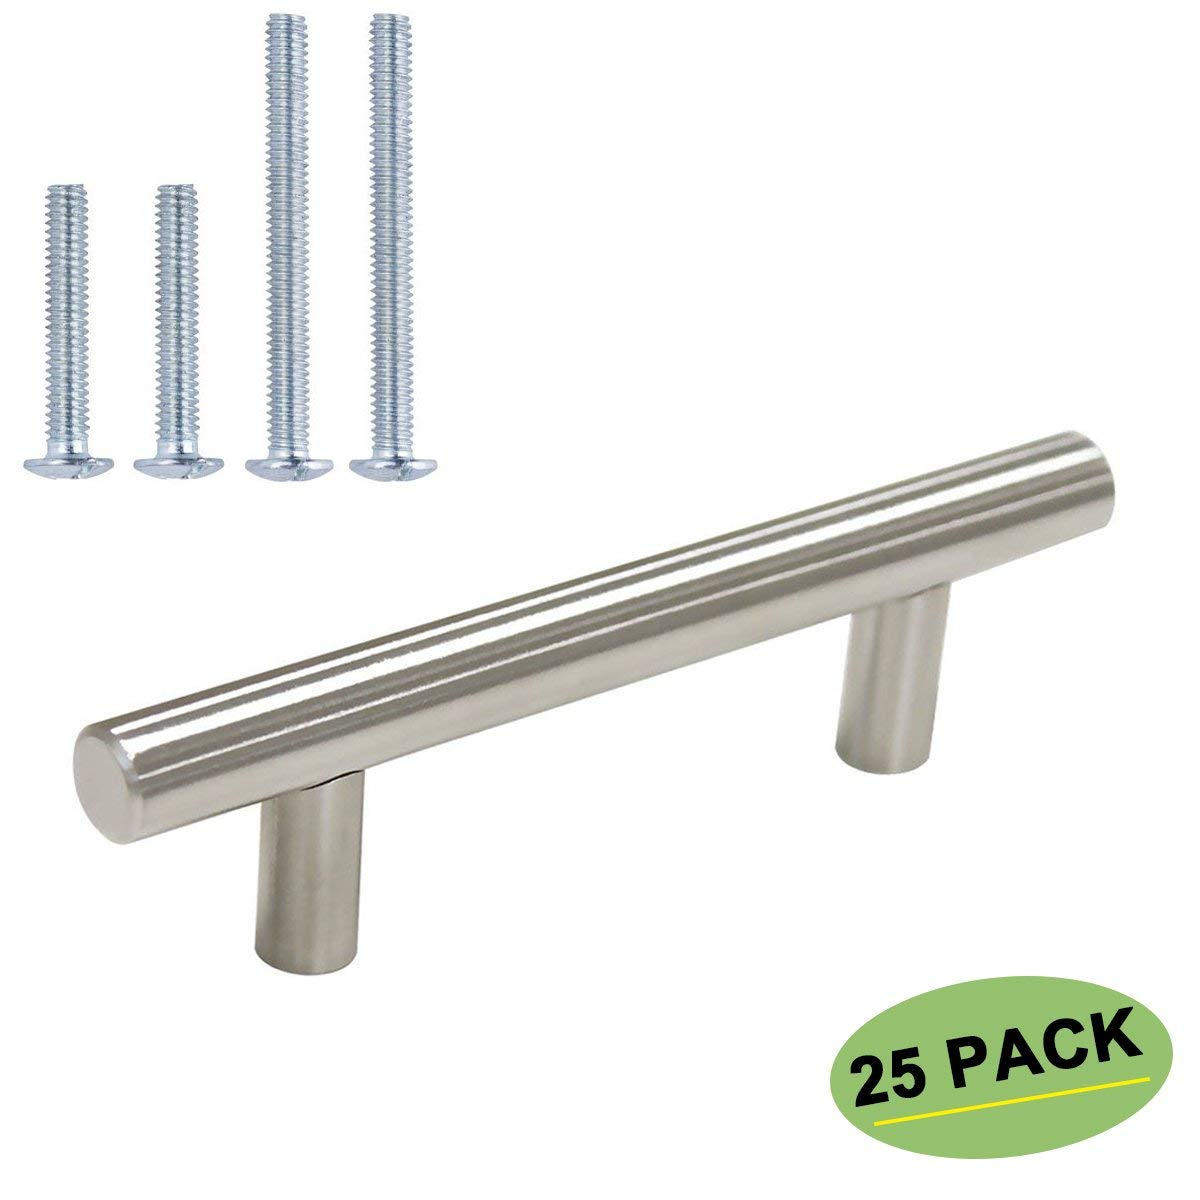 homdiy Bar Pulls for Cabinets Satin Nickel Cabinet Pulls 25Pack 76mm Center to Center Kitchen Handles for Cabinets Cupboard Handles Cabinet Handles Brushed Nickel Dawer Pulls 3 inch